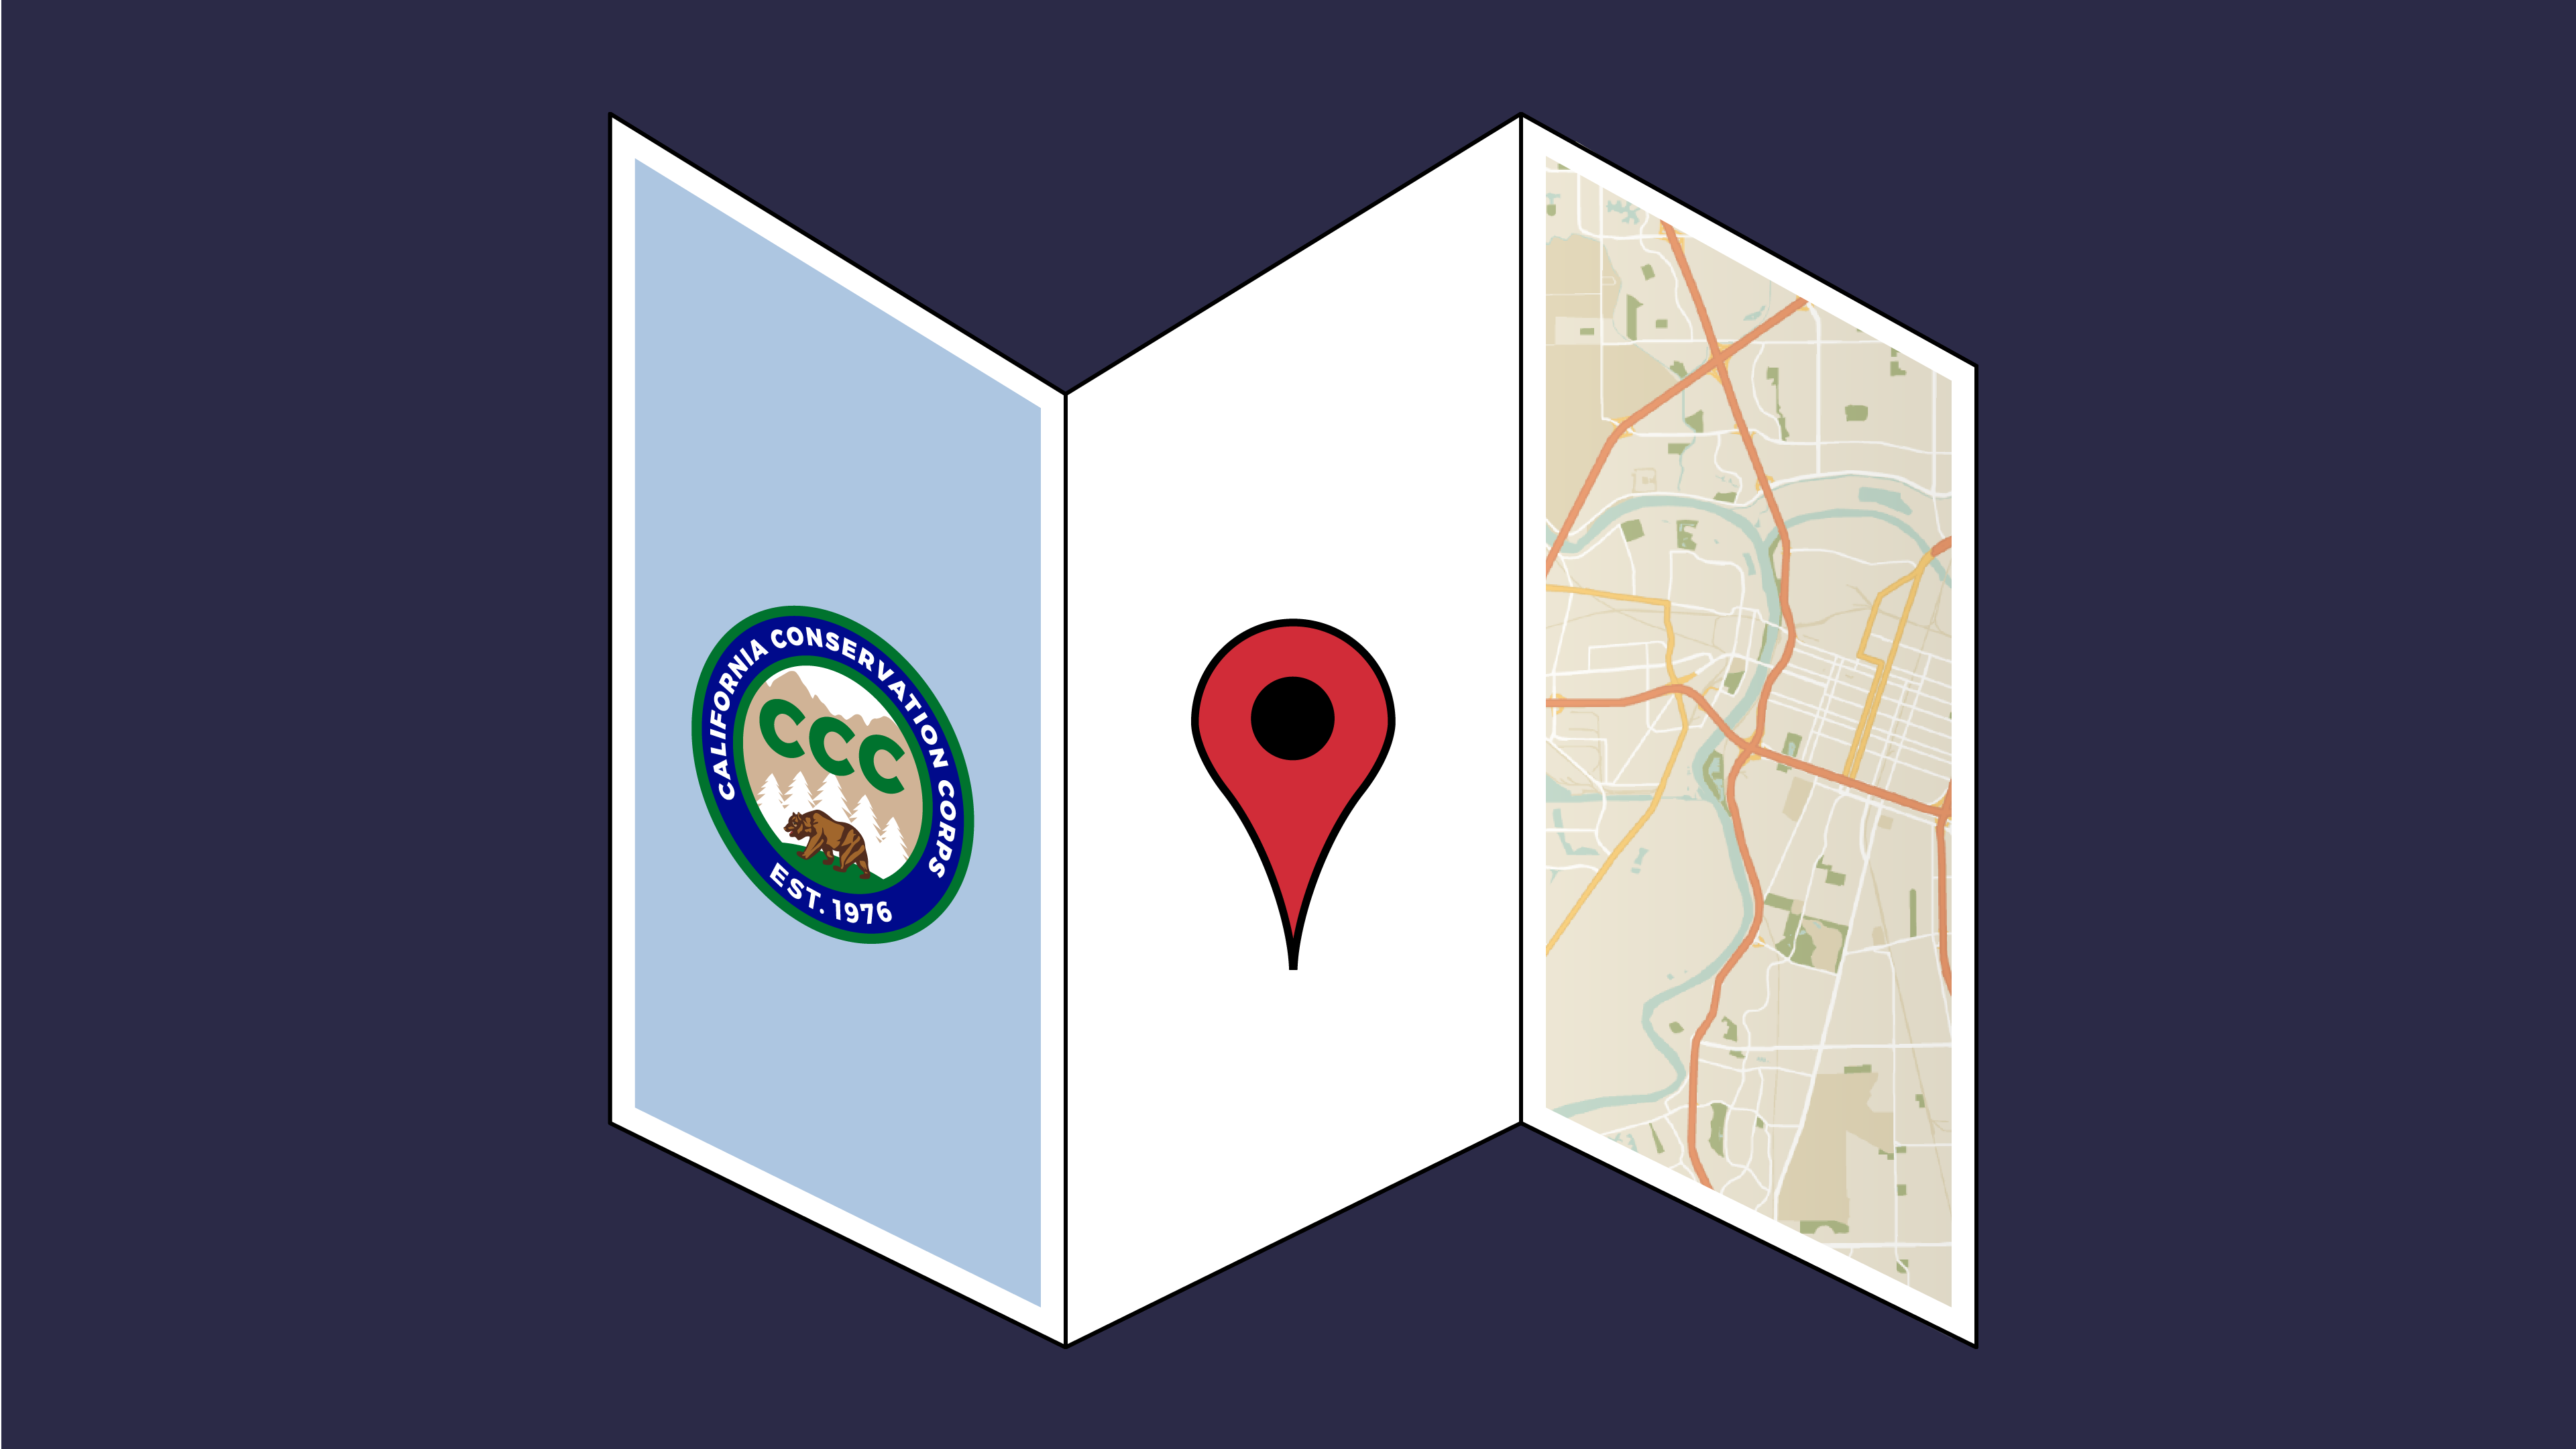 Image illustration of CCC logo and a map on a trifold brochure